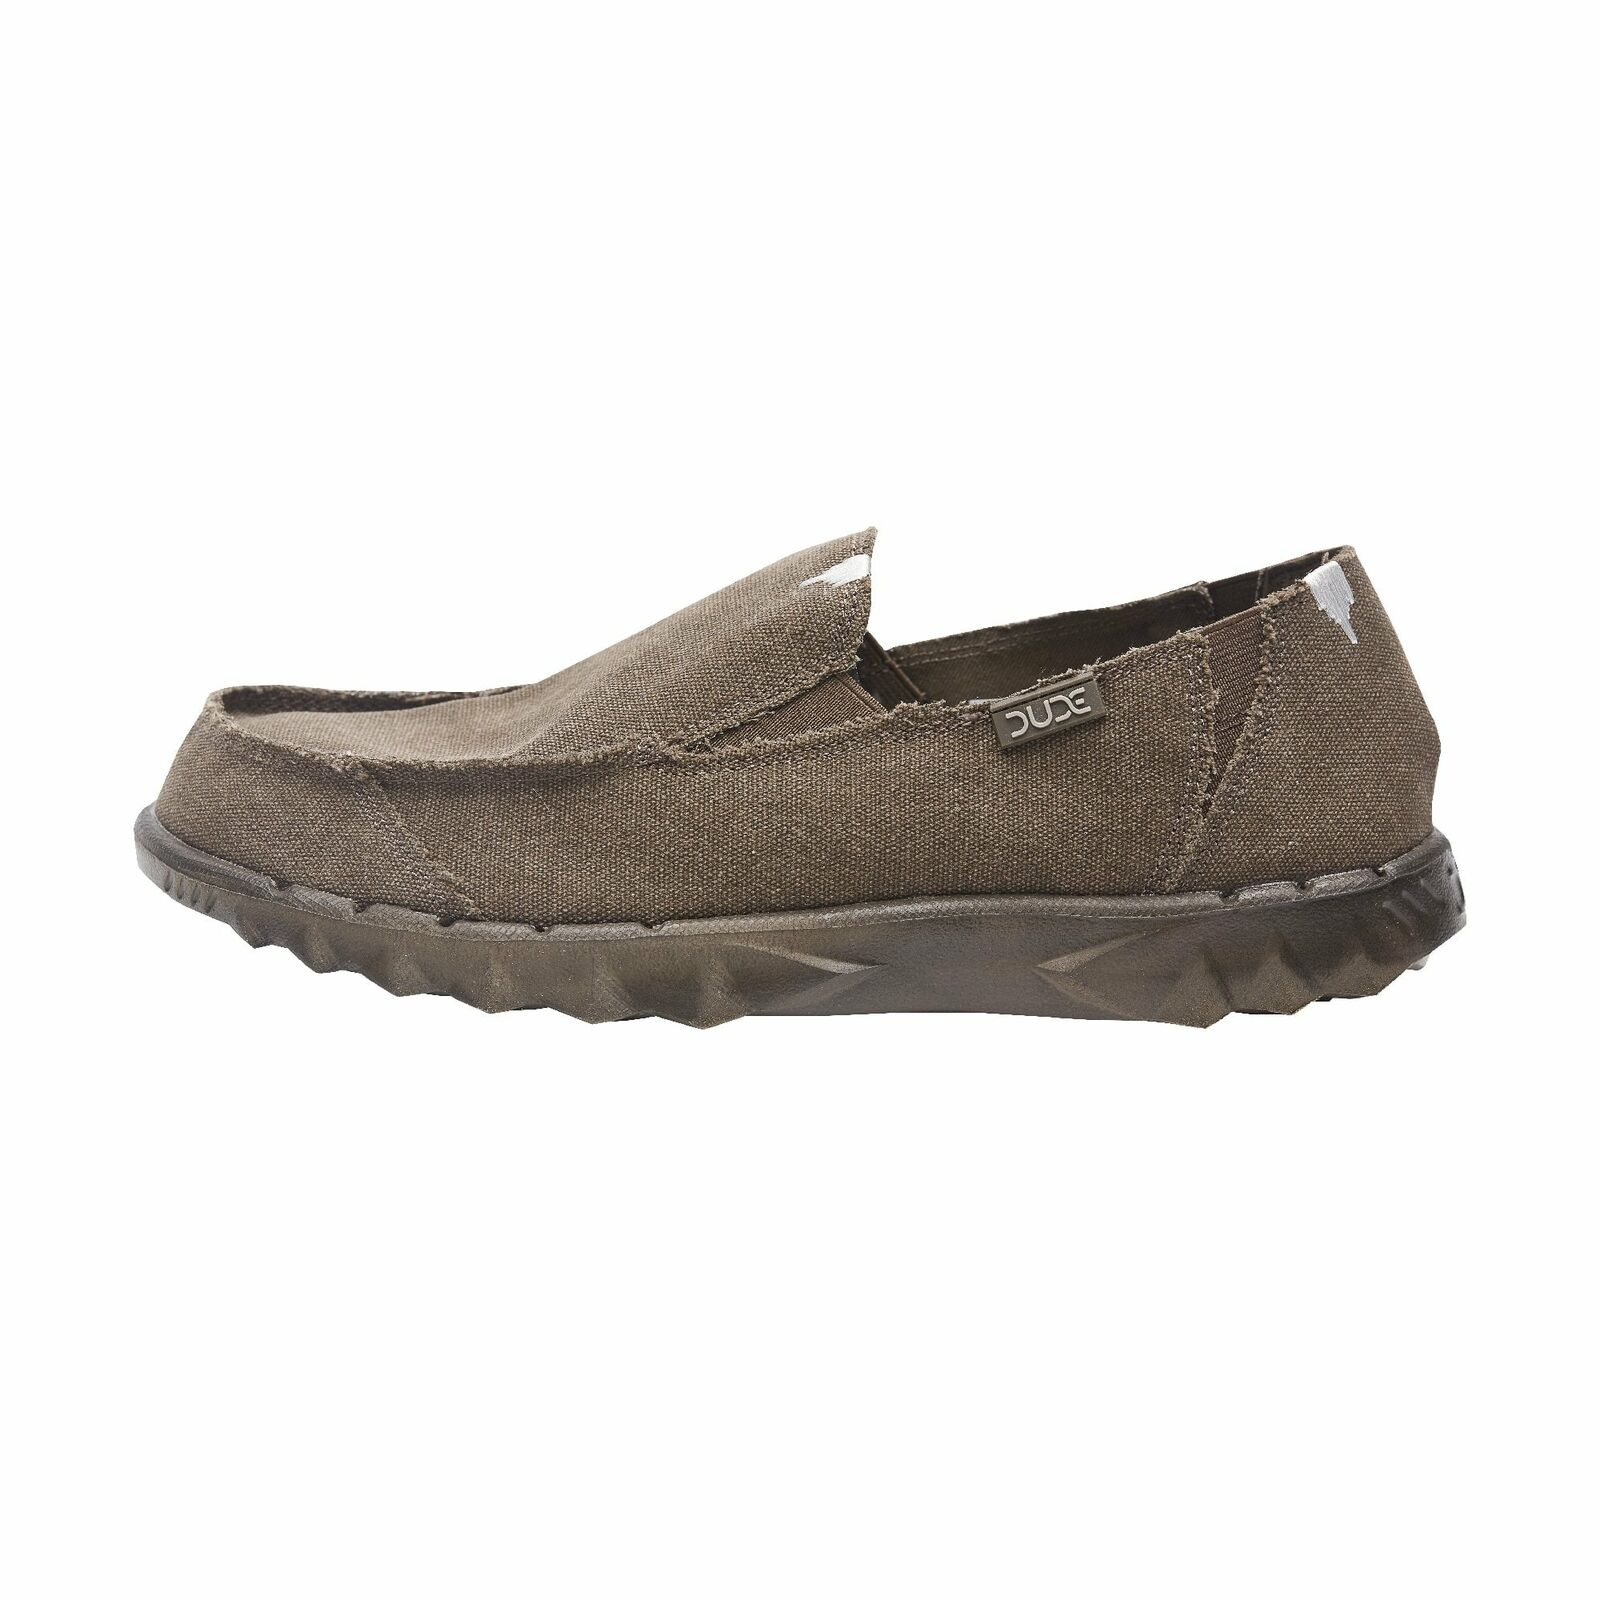 Hey Dude shoes Mens Farty Roughcut Chocolate Canvas Slip On Mule